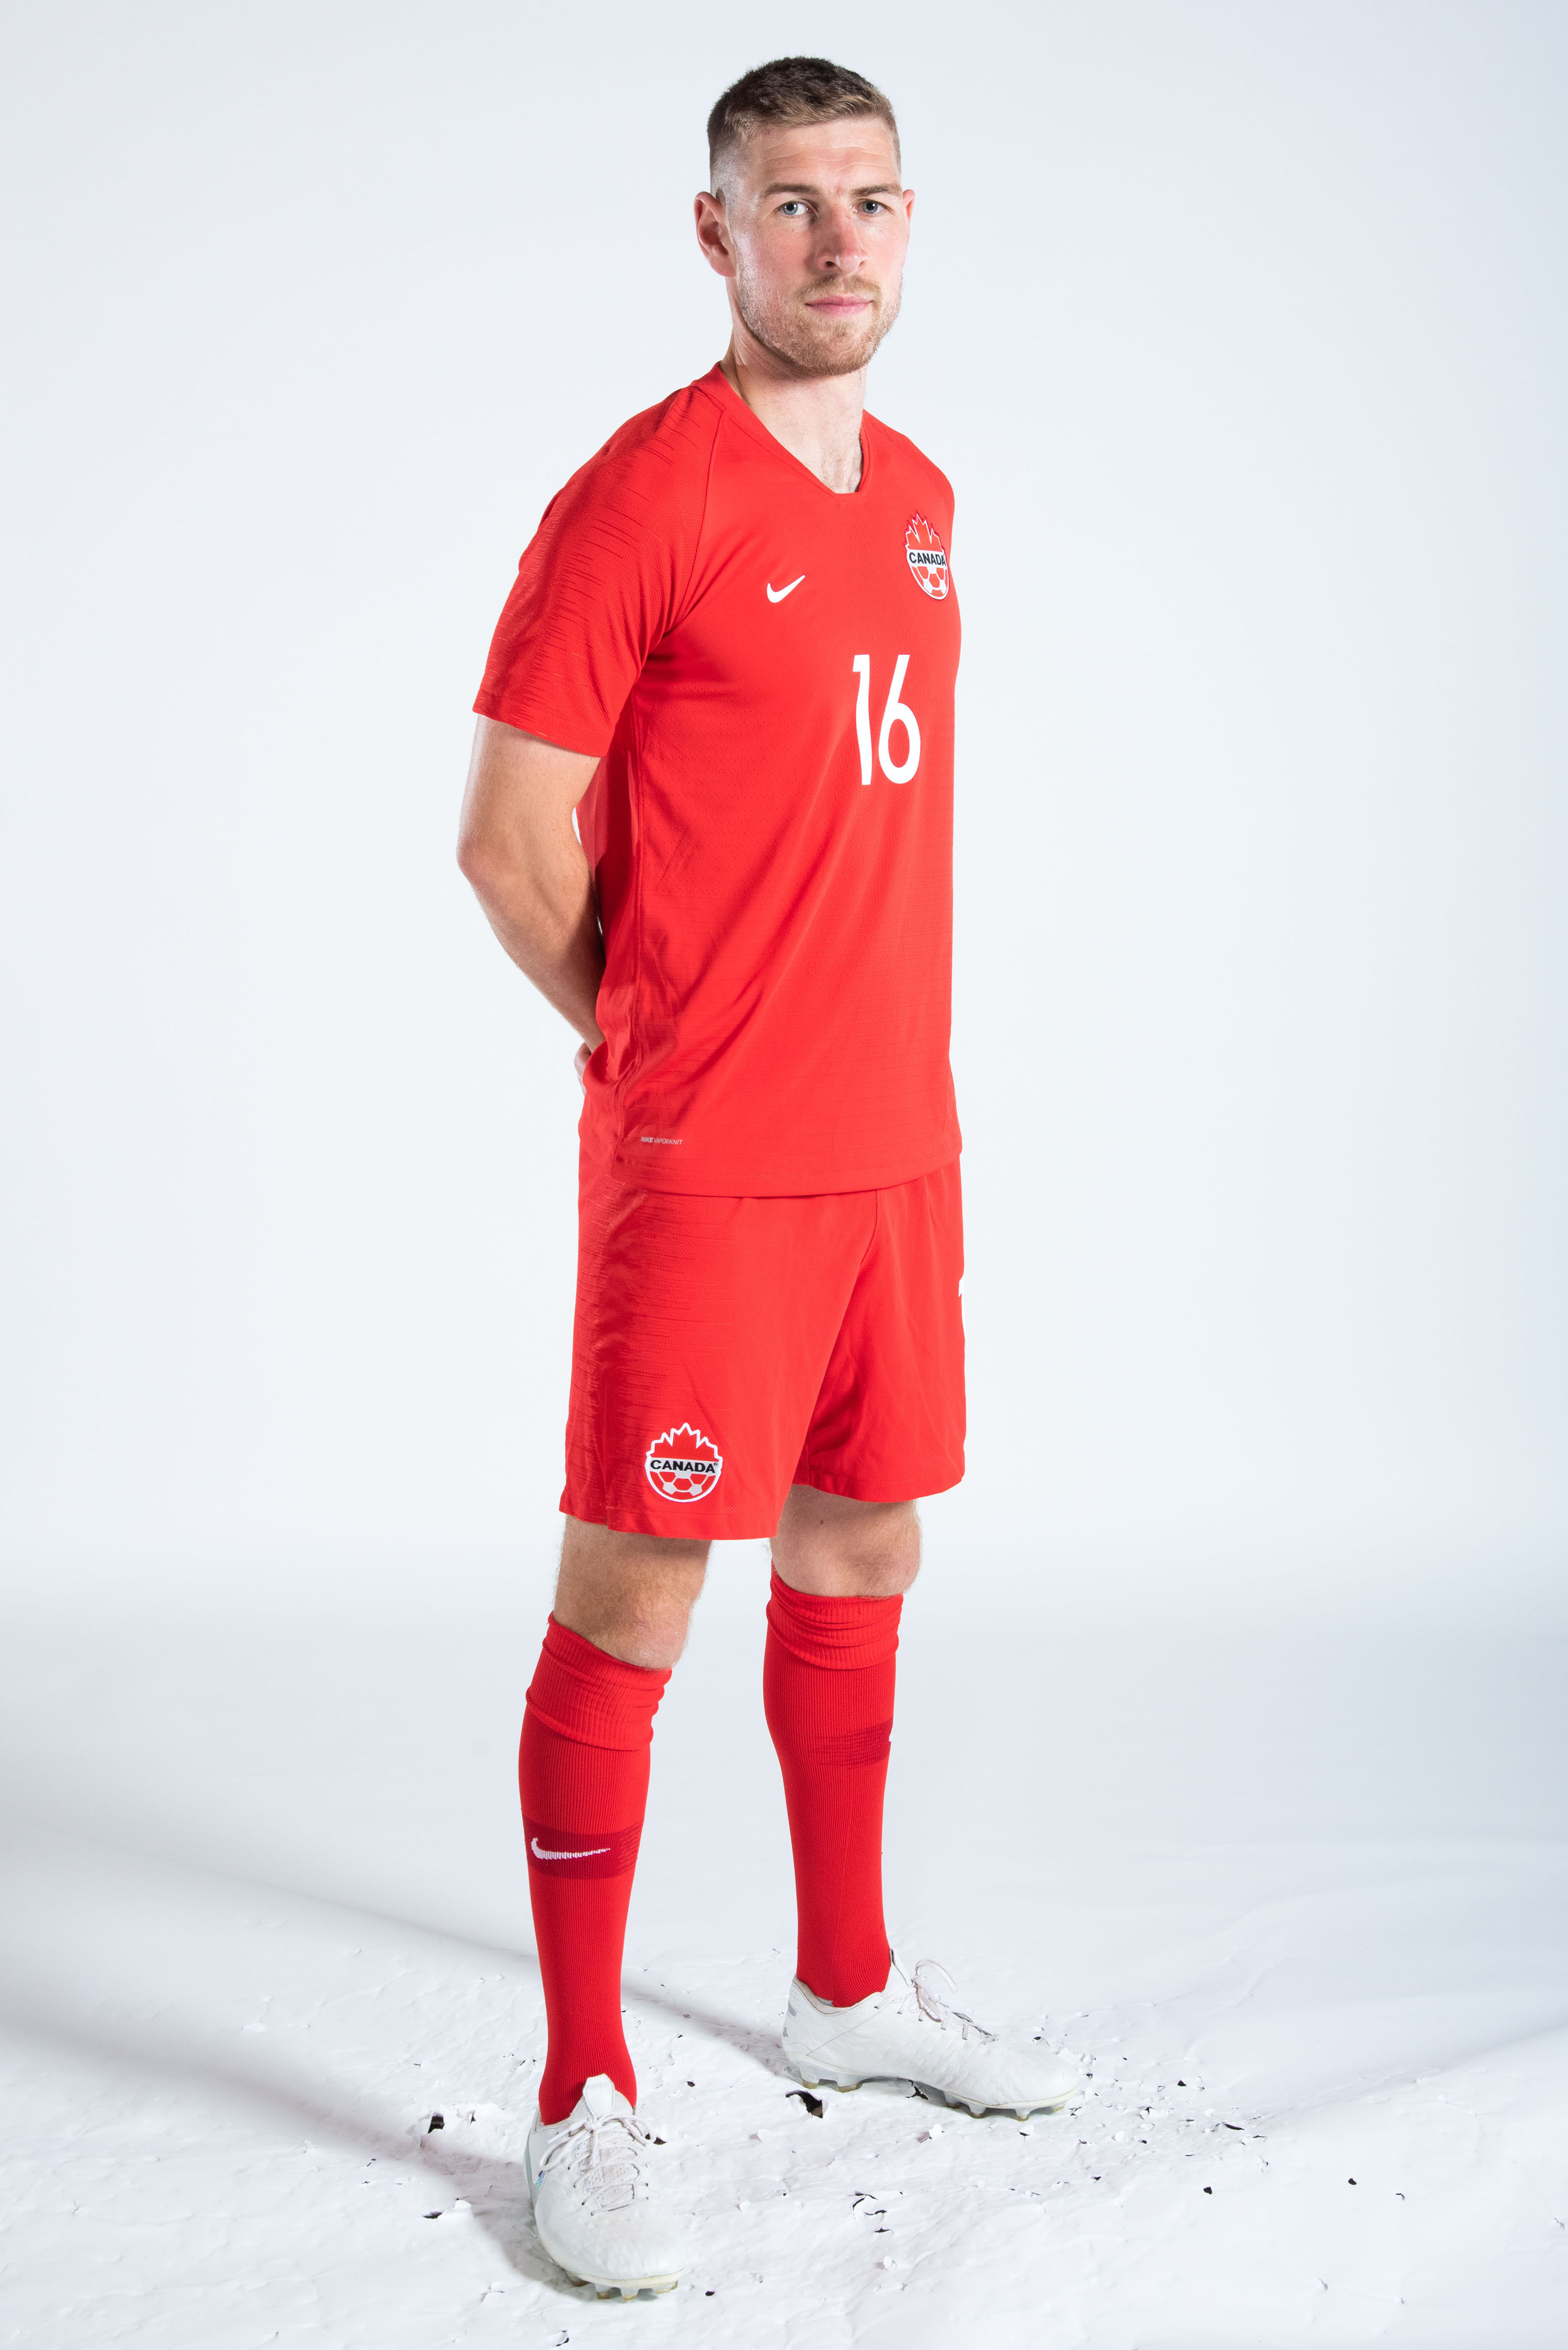 20190904_CANMNT_Wotherspoon_byBazyl02